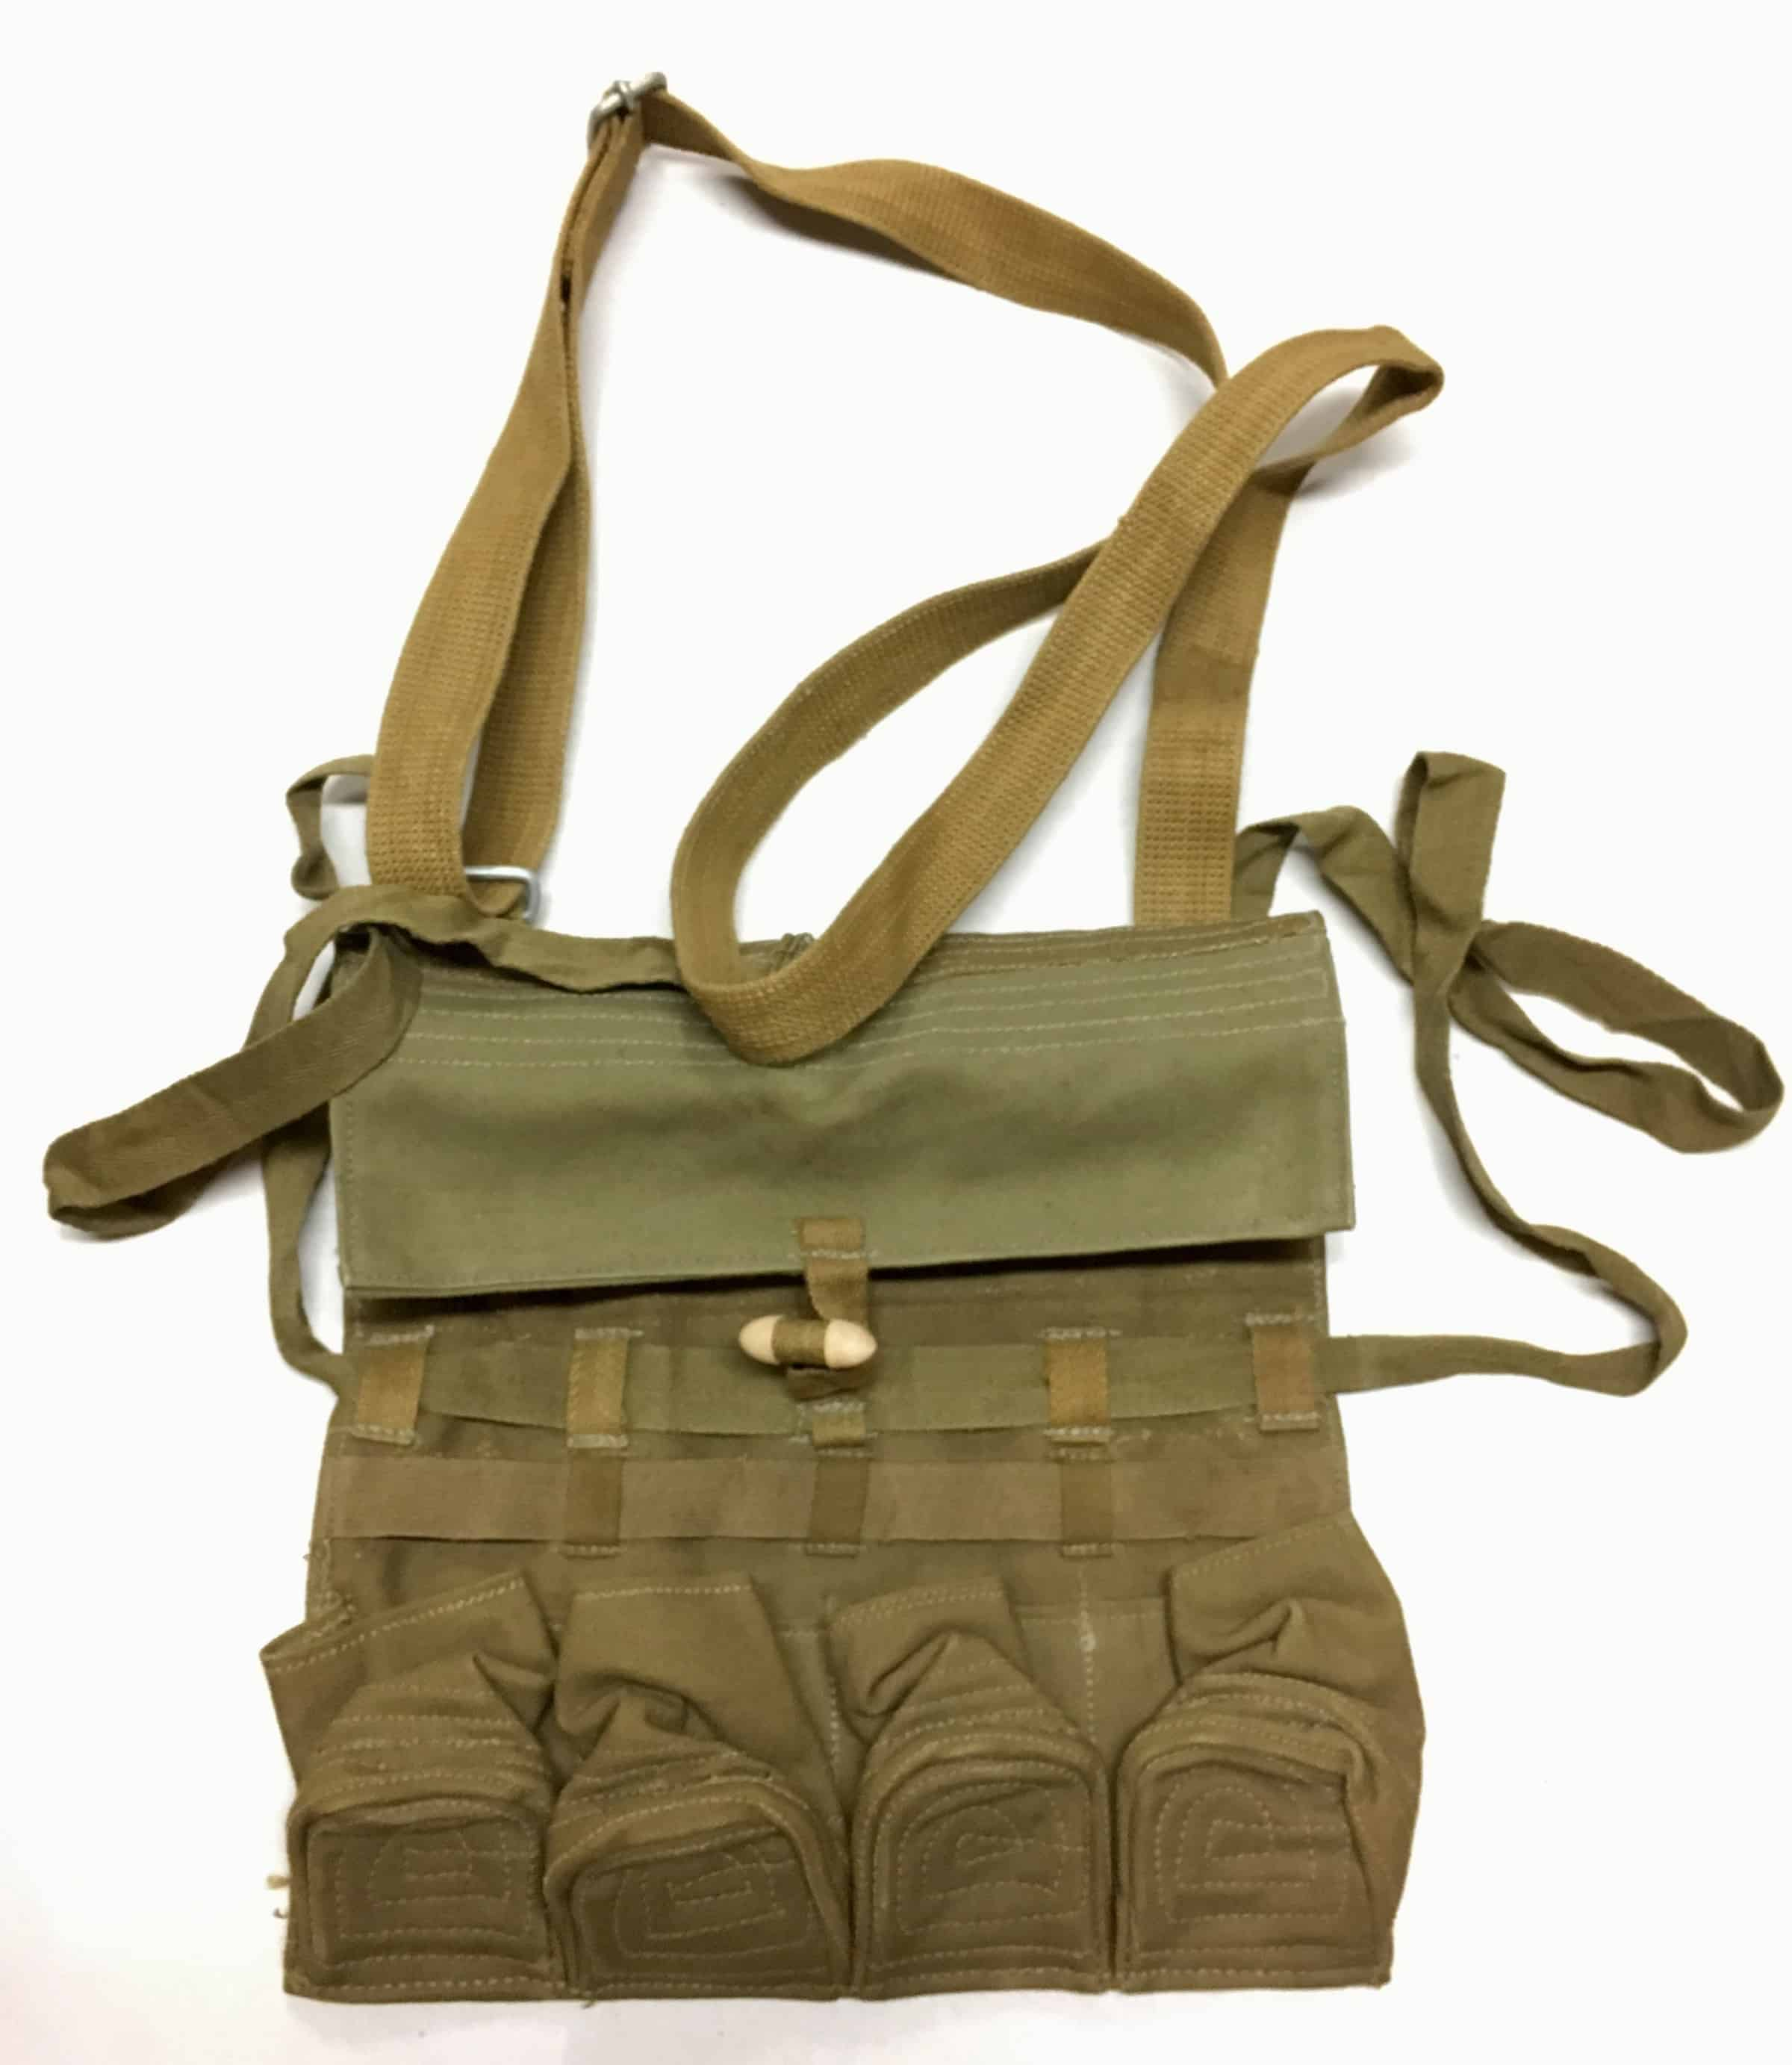 Chinese PLA Four Cell Stick Grenade Pouch 1960